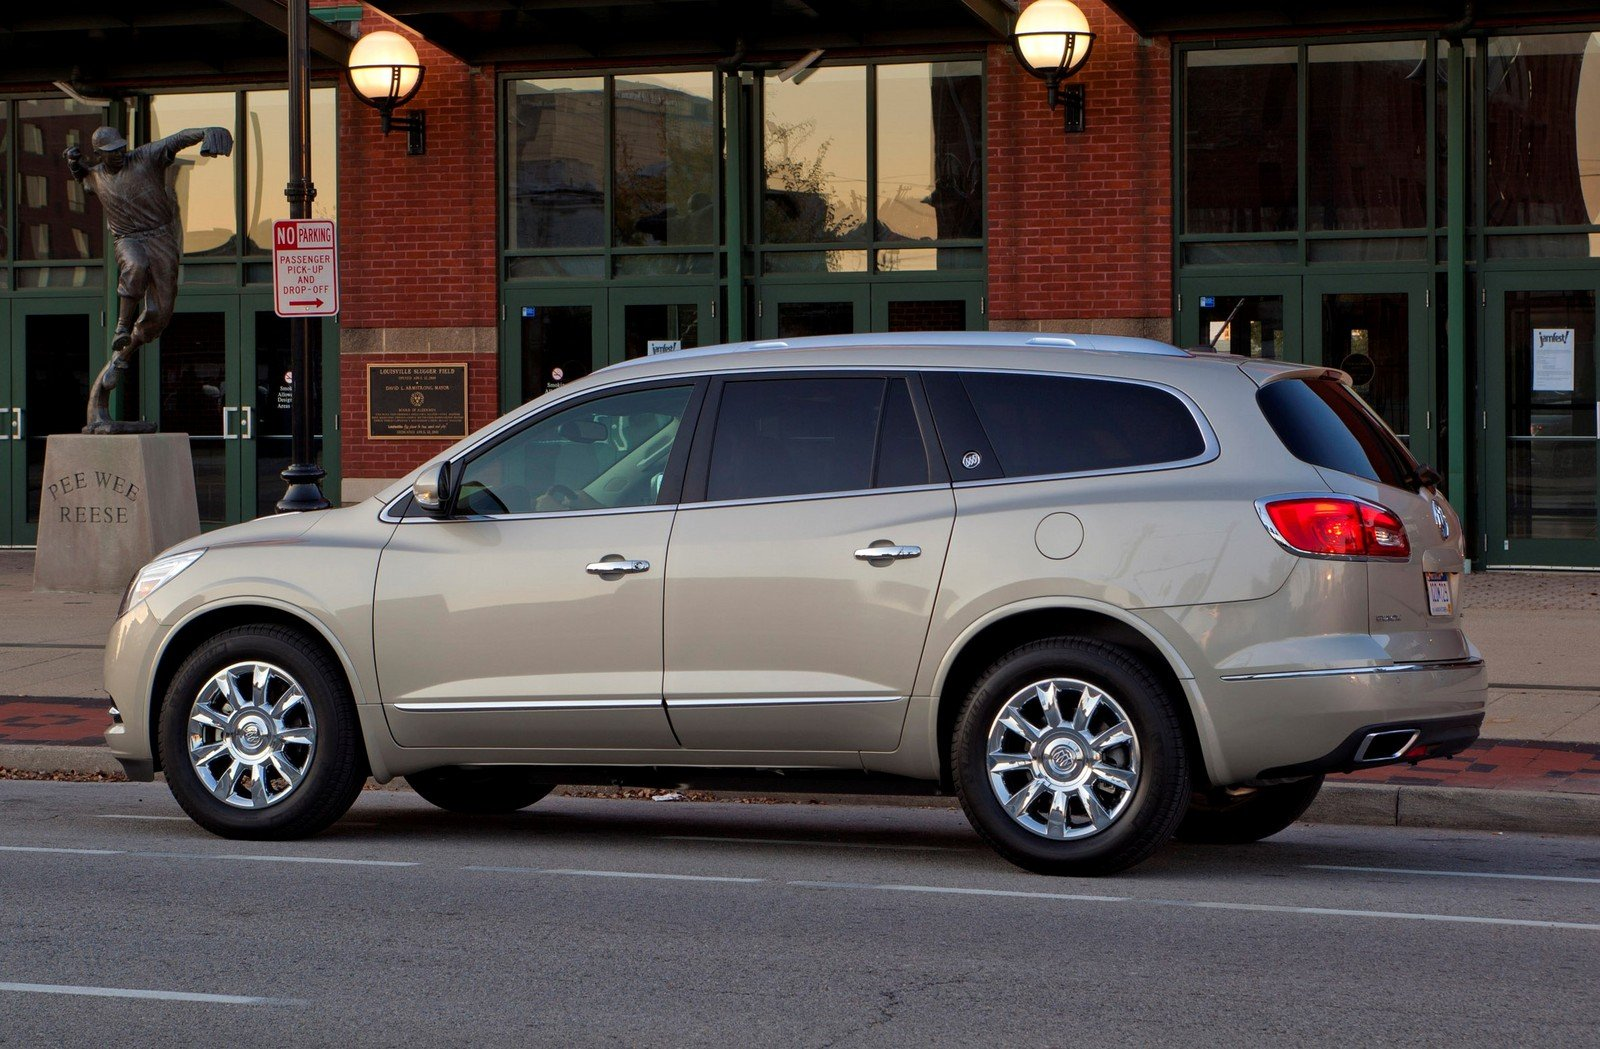 2014 buick enclave picture 514992 car review top speed. Black Bedroom Furniture Sets. Home Design Ideas